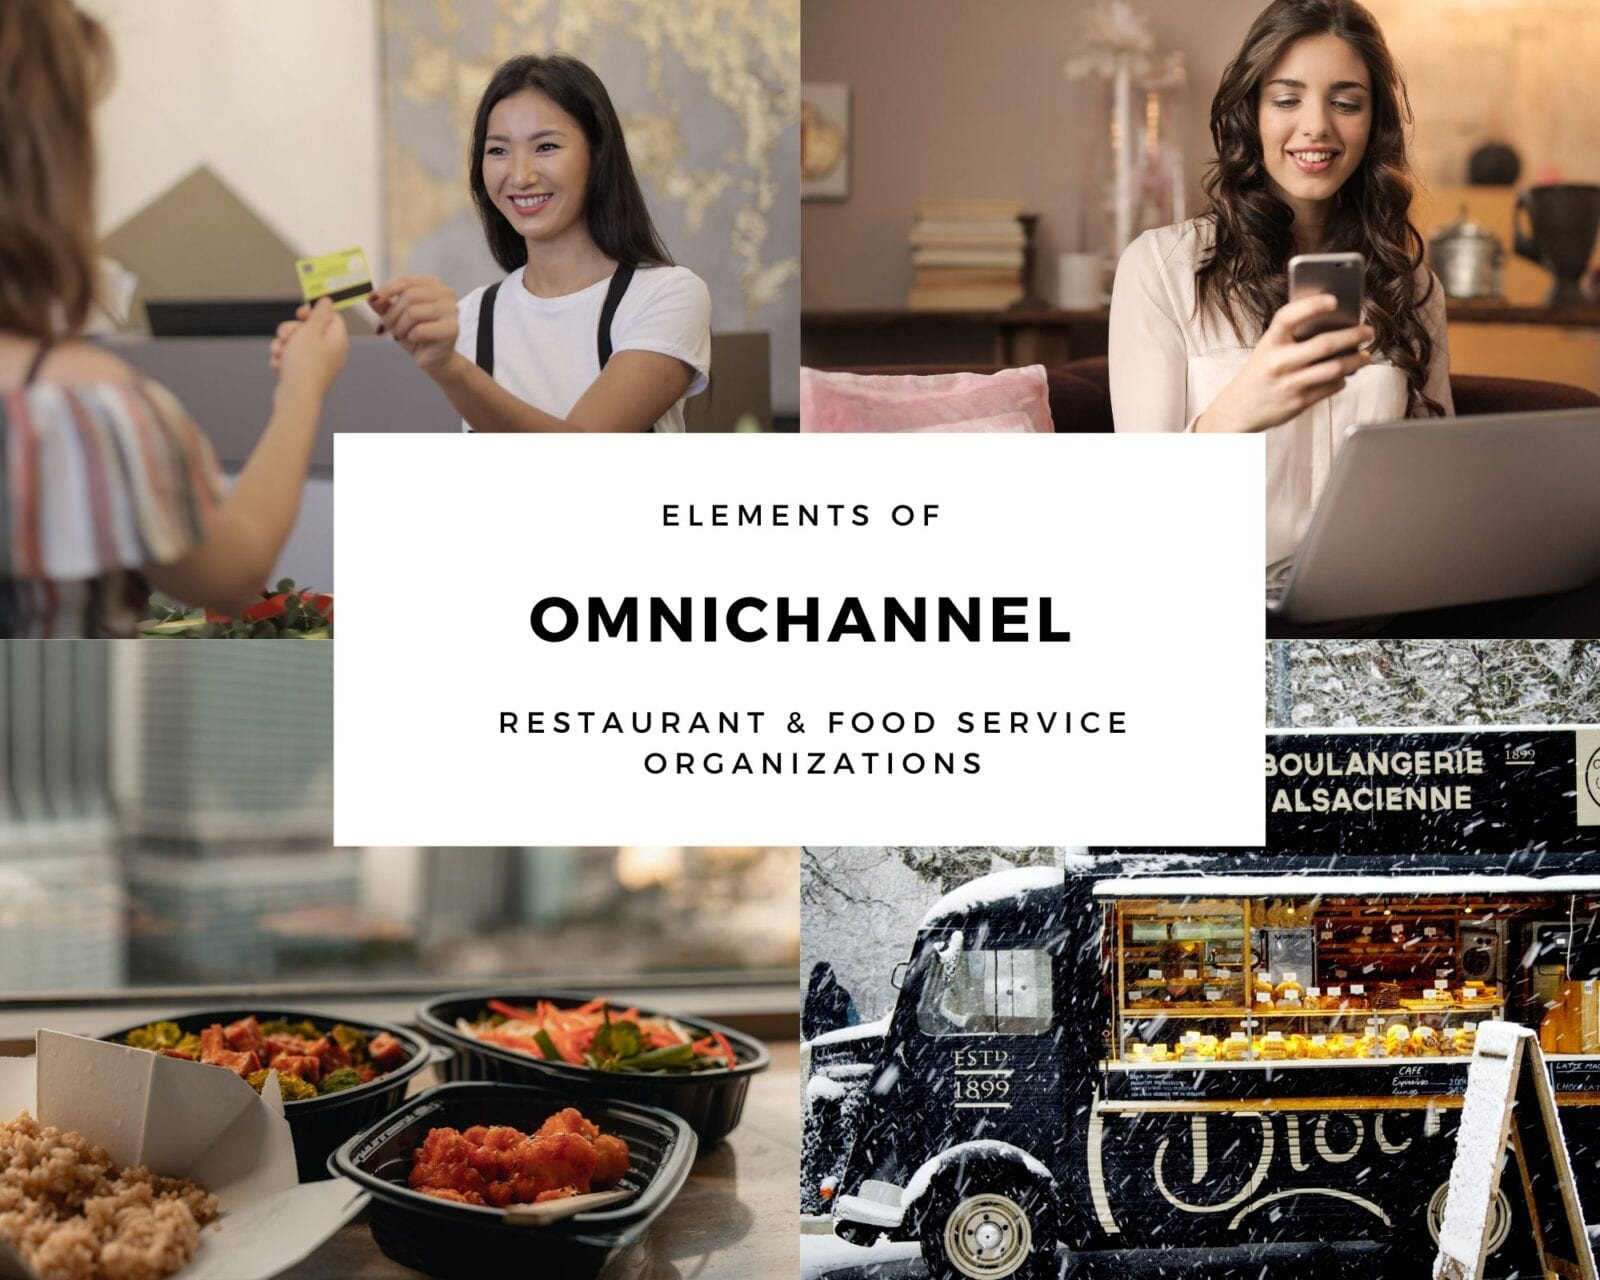 Elements of OmniChannel Restaurant & Food Service Businesses